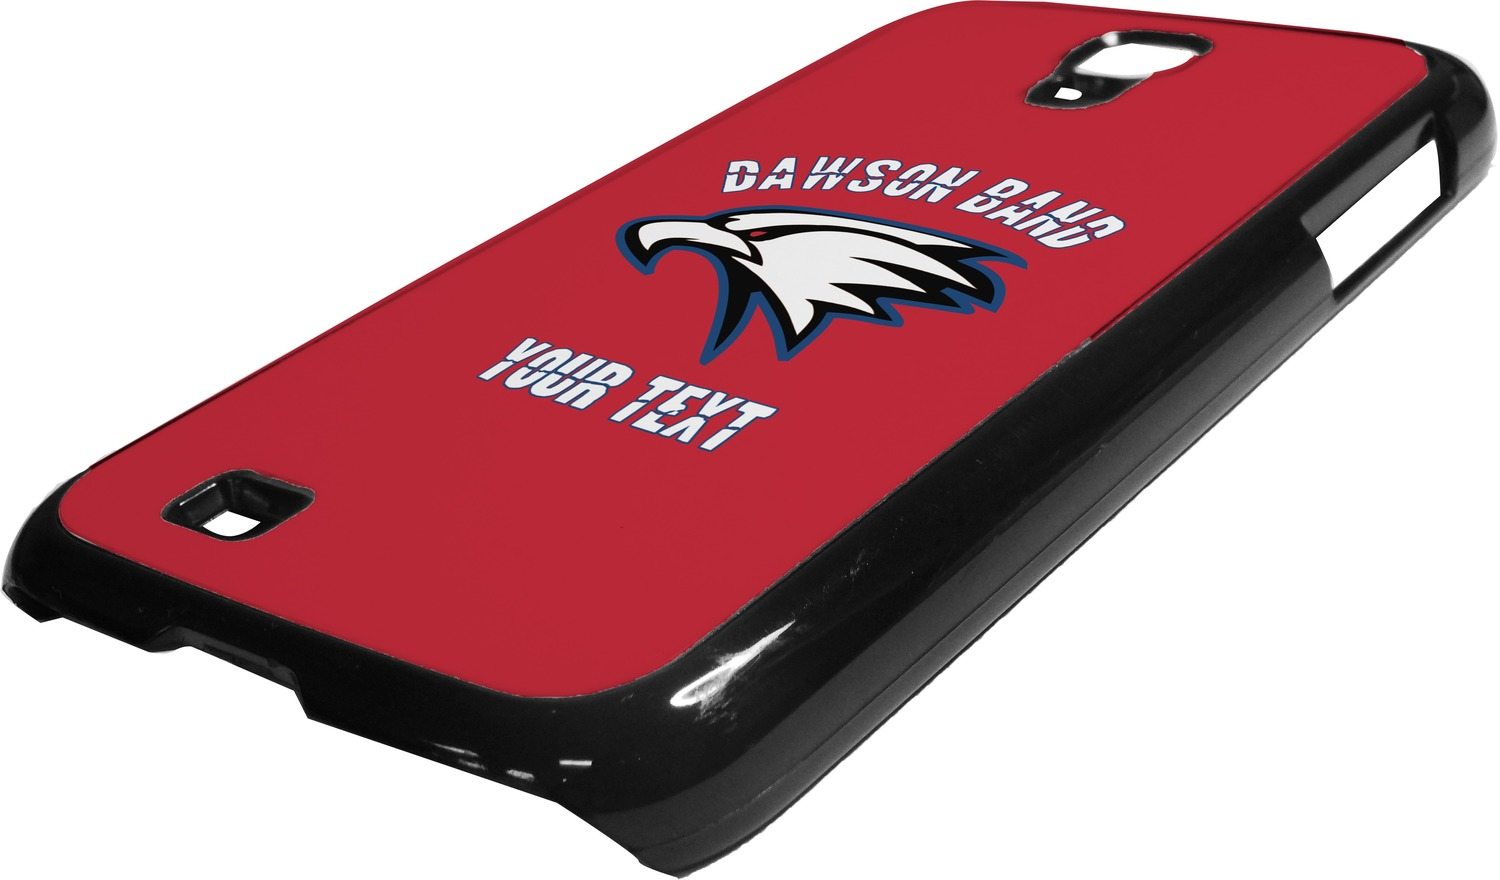 dawson eagles band logo plastic samsung galaxy 4 phone case